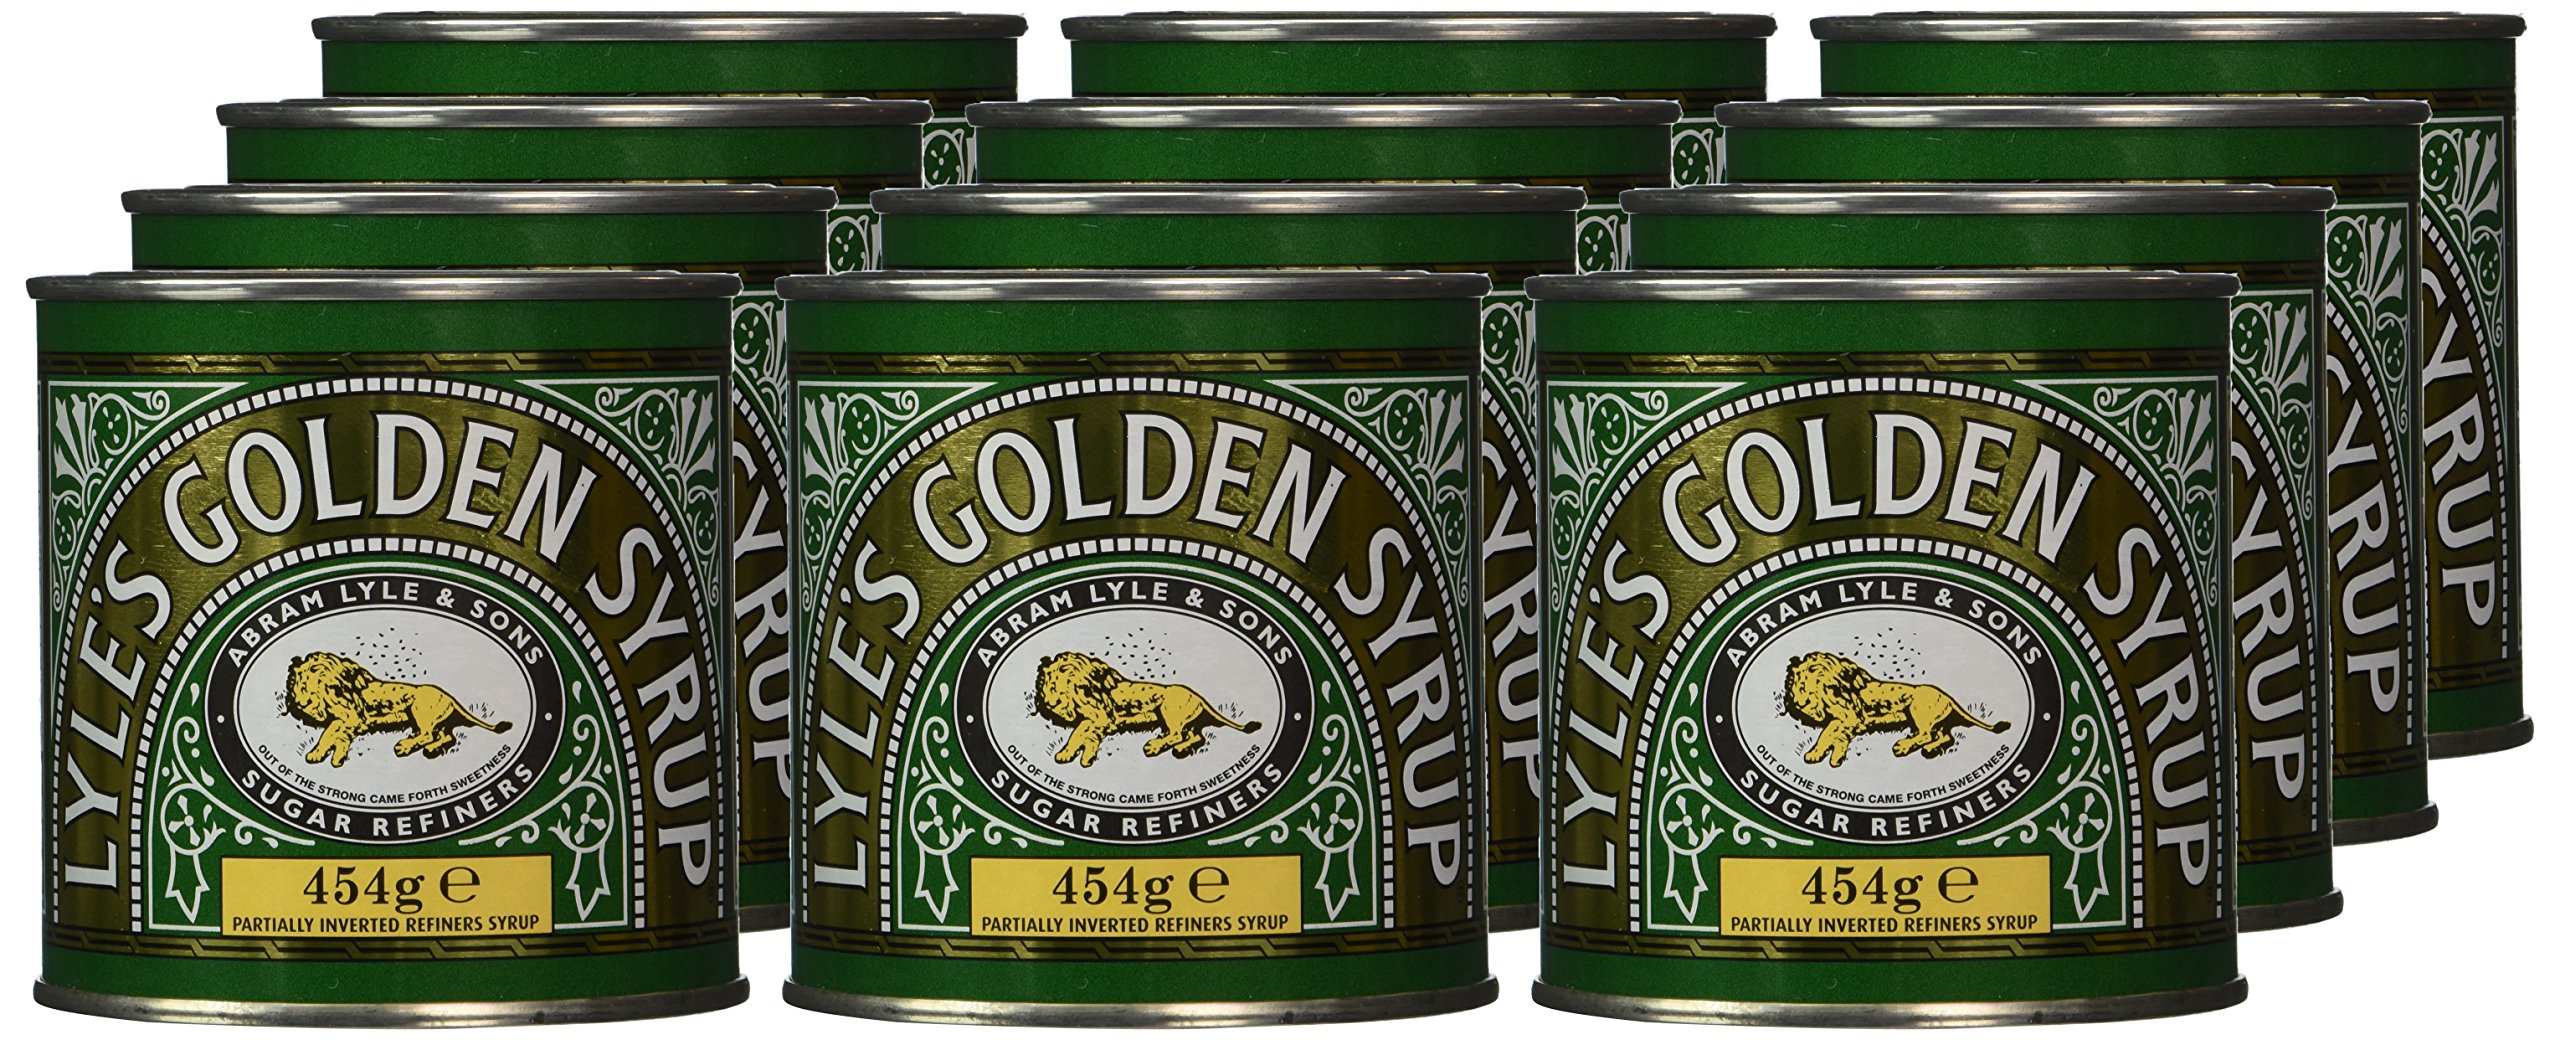 Tate & Lyle Golden Syrup - Case of 12 X 454 Gram Containers by Tate & Lyle (Image #2)